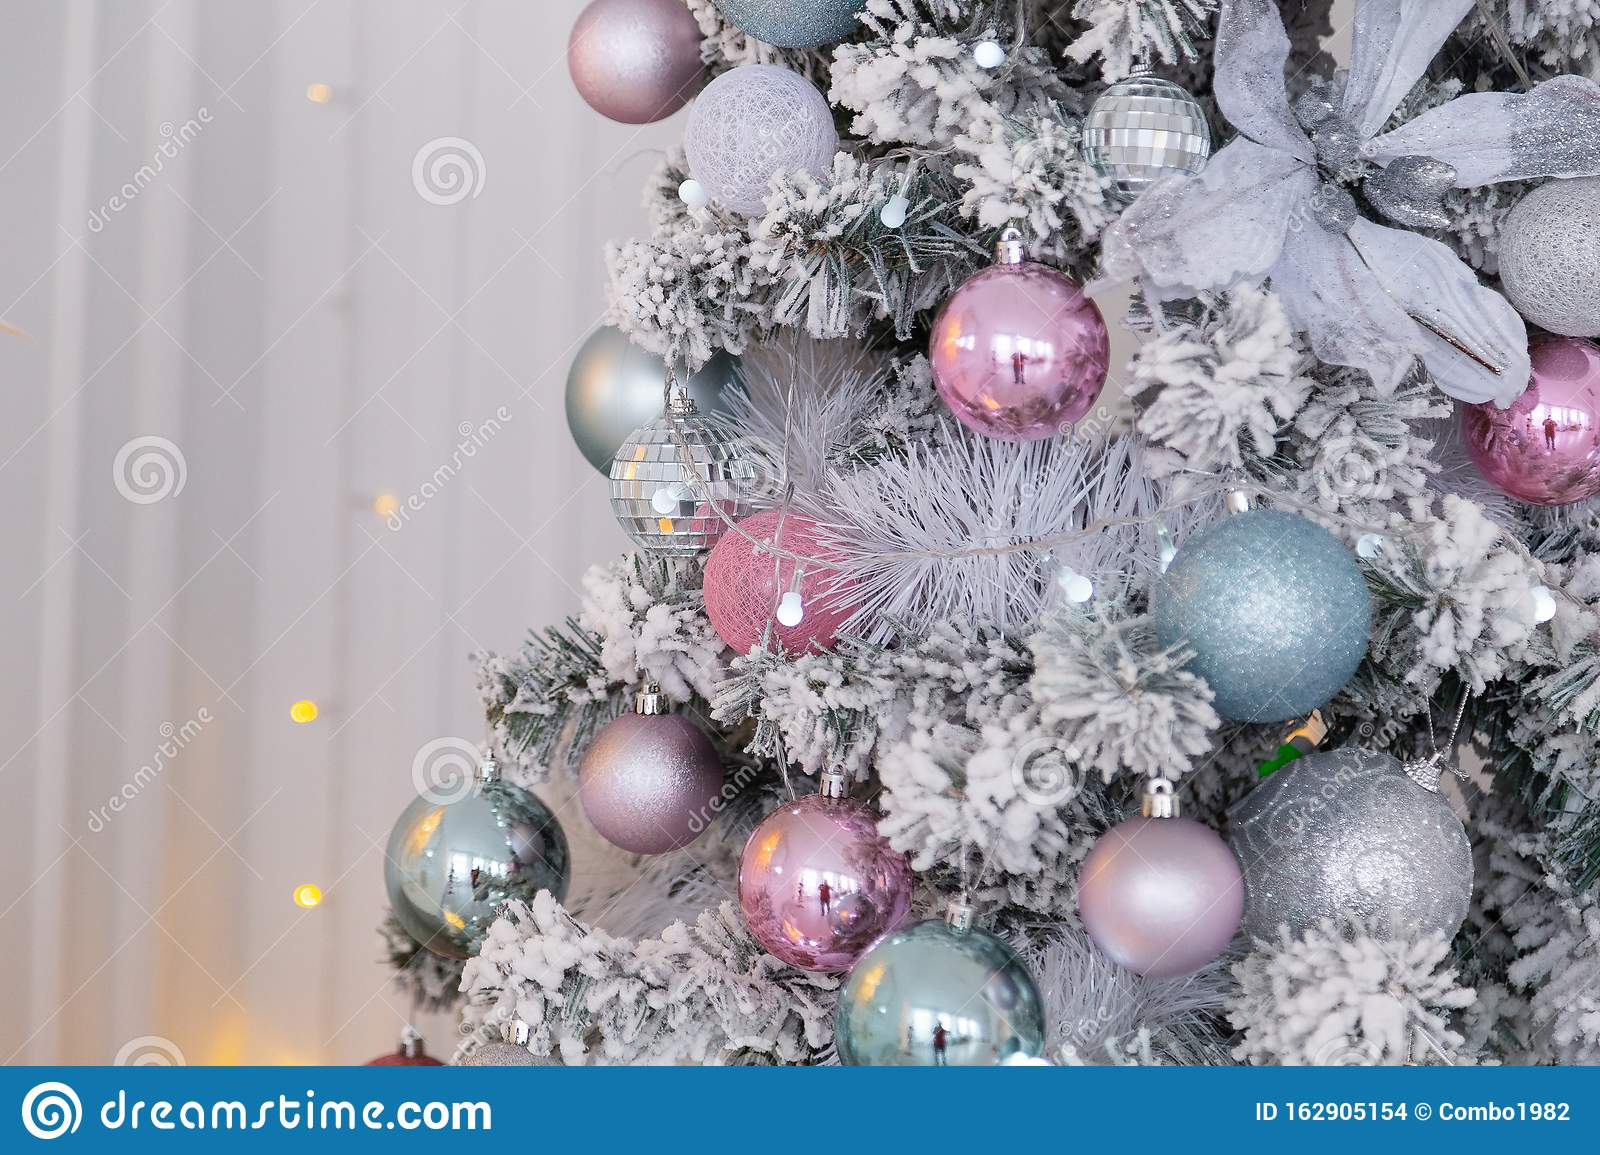 Christmas 2020 Silver Beautiful Silver Christmas Tree With Decorations. New Year 2020